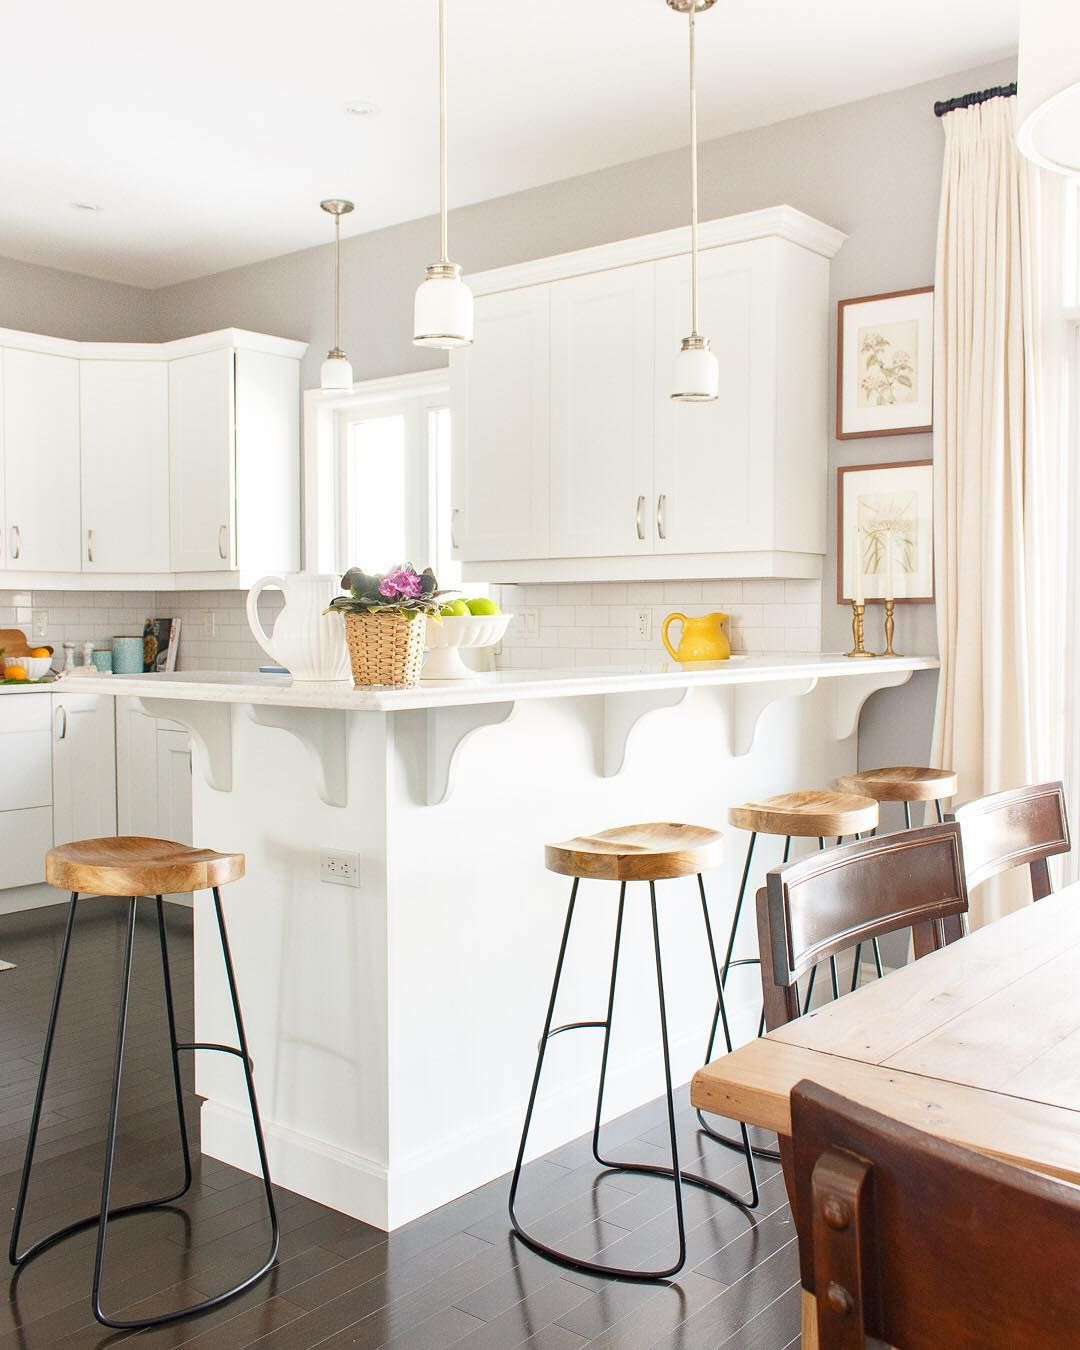 White kitchen with quartz counters and wooden barstools for the